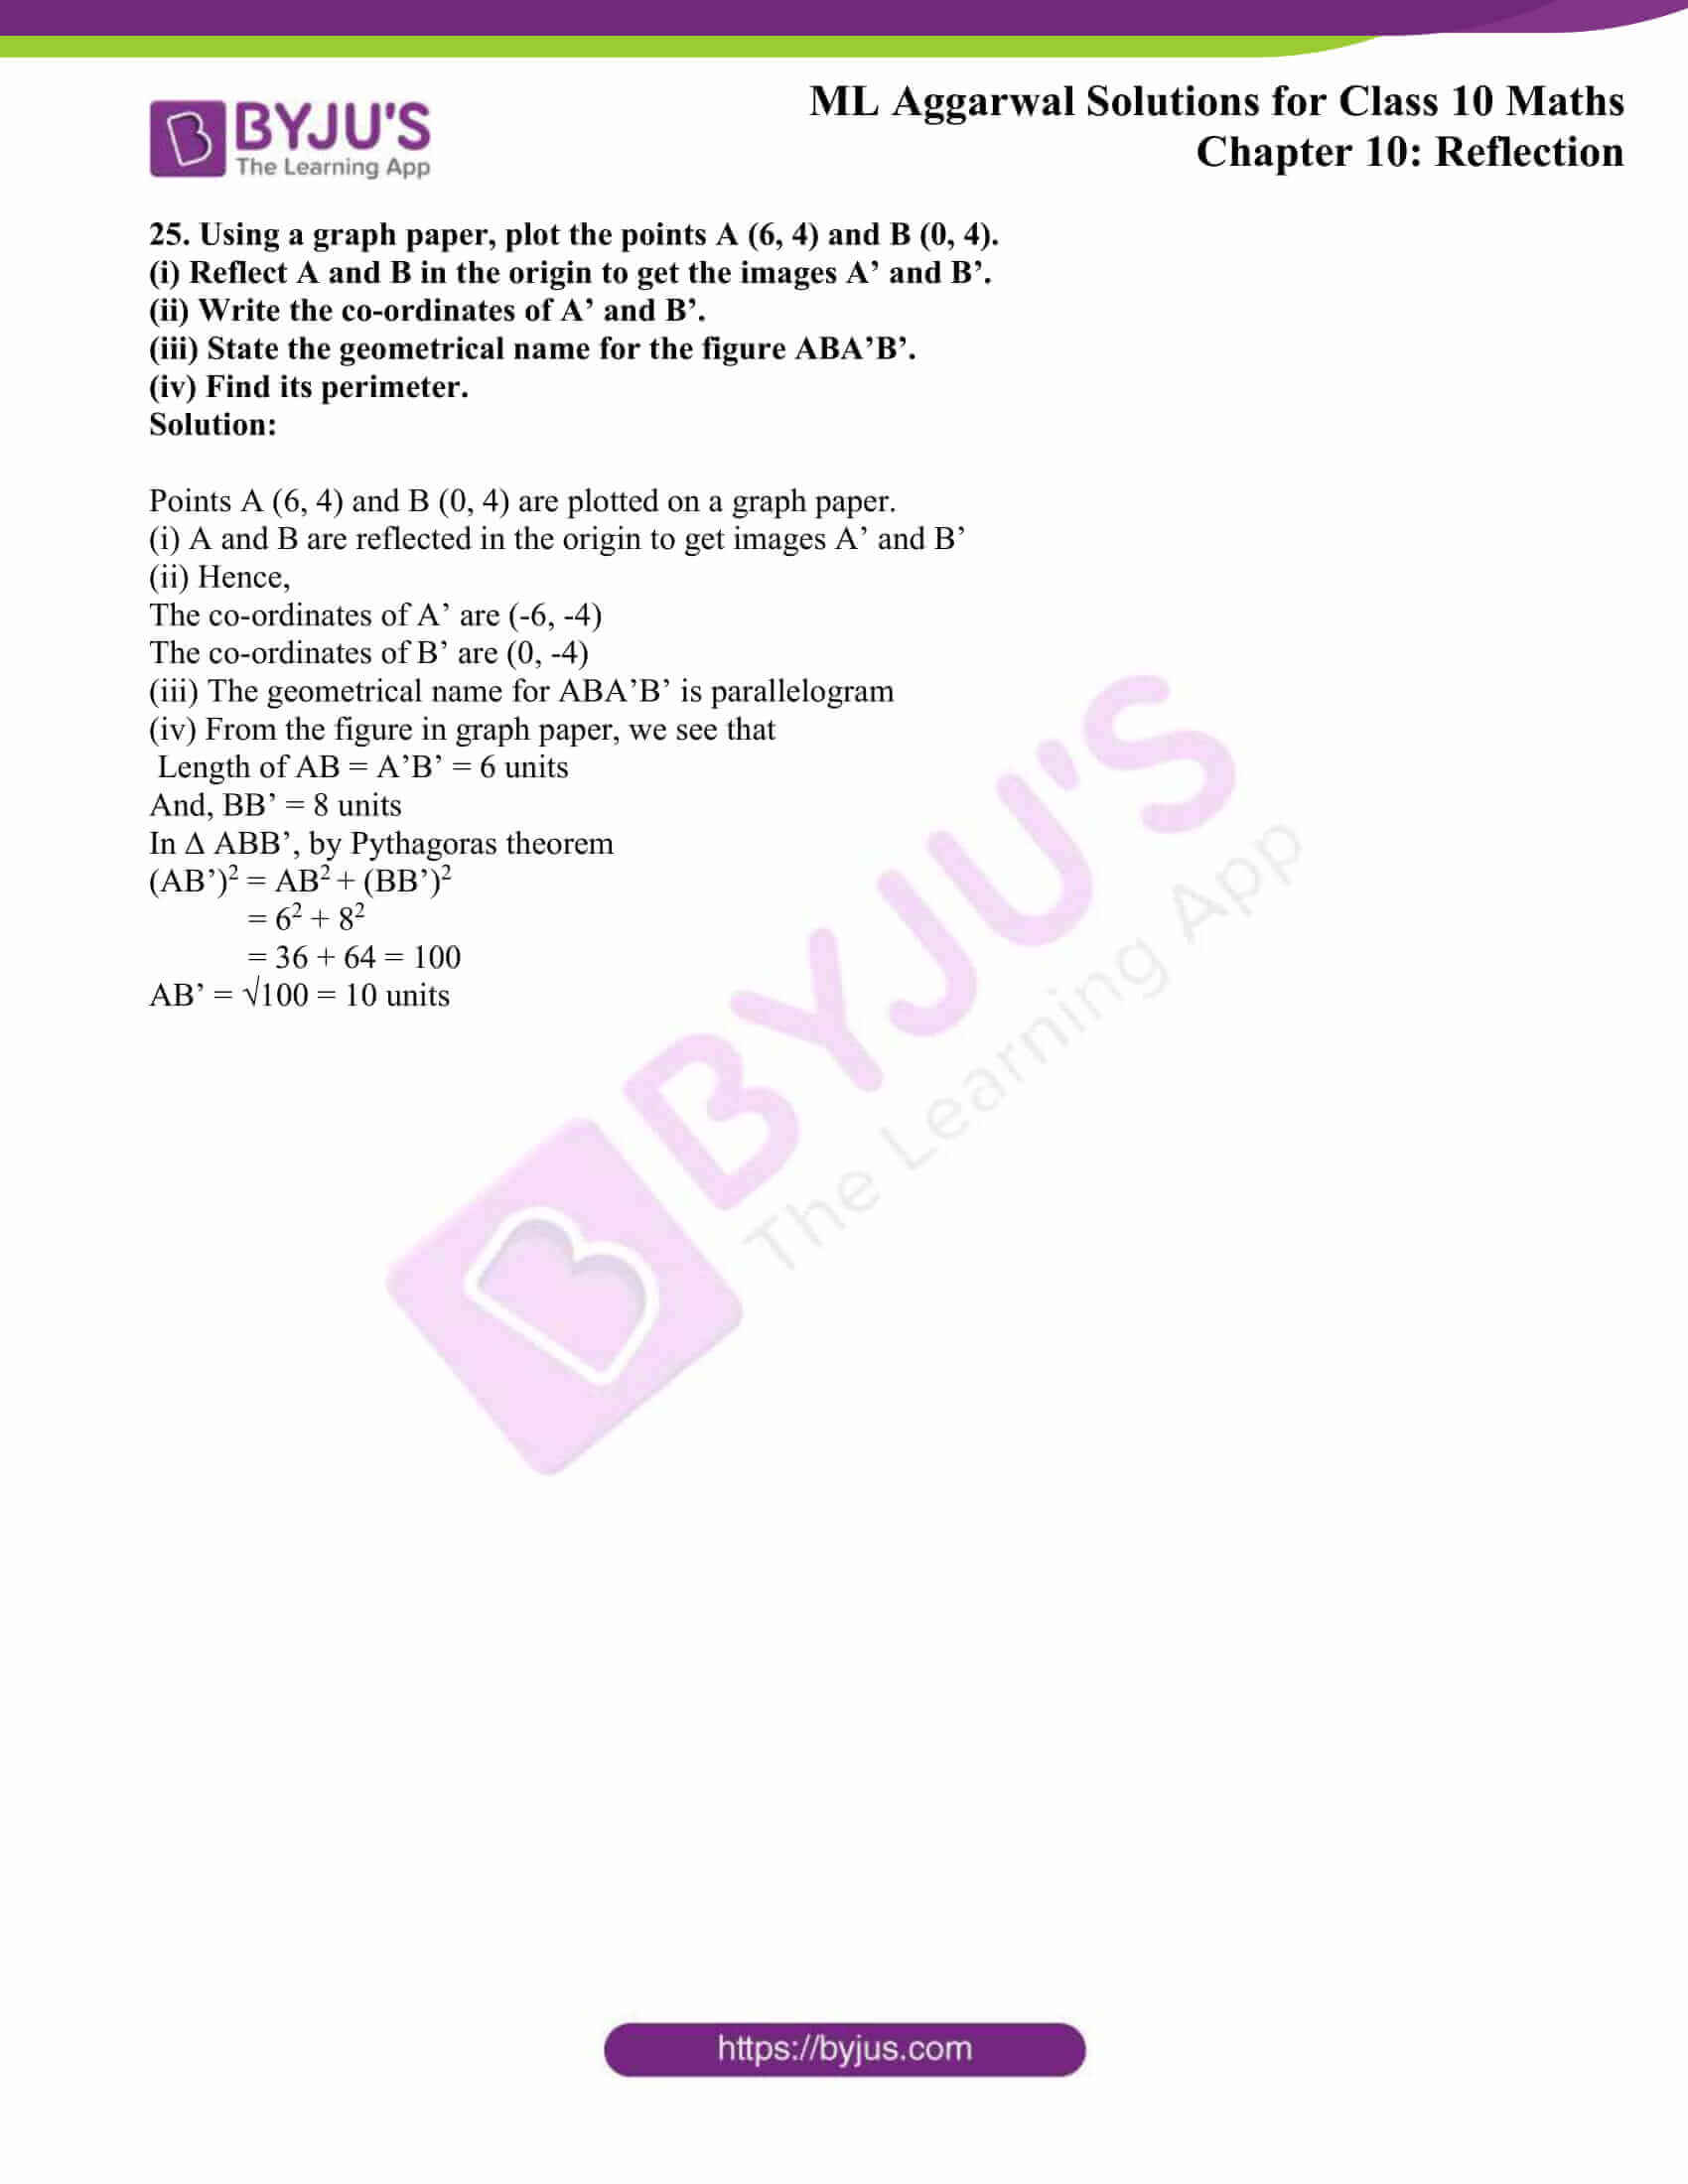 ml aggarwal solutions class 10 maths chapter 10 17